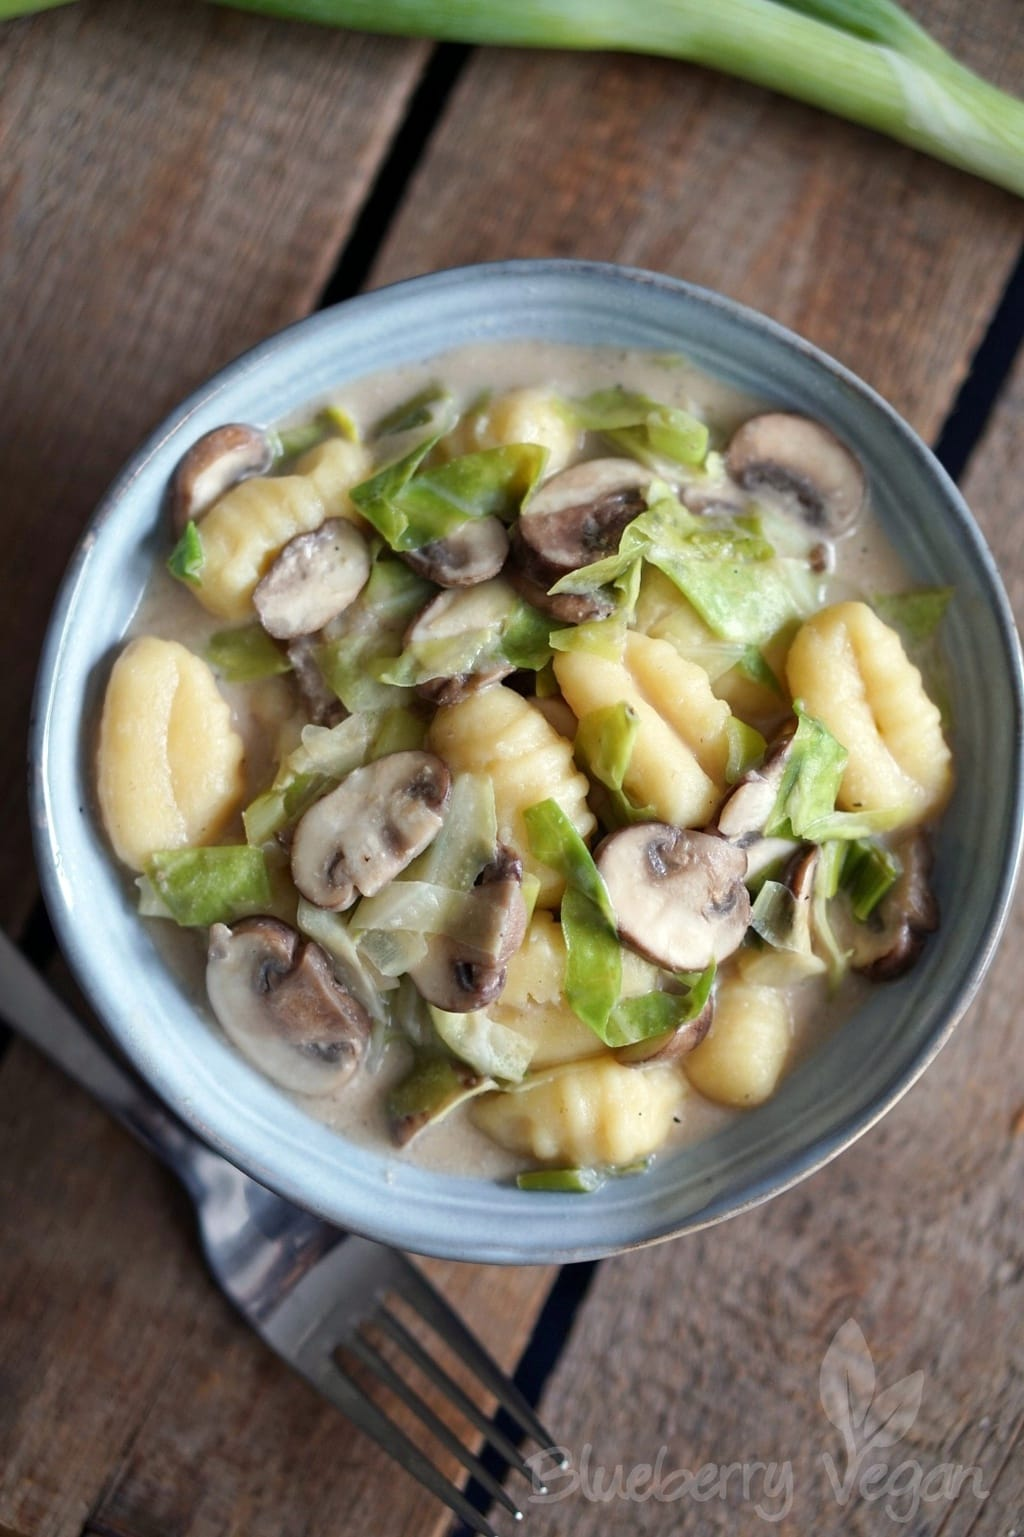 Creamed Gnocchi with Mushrooms and Pointed Cabbage